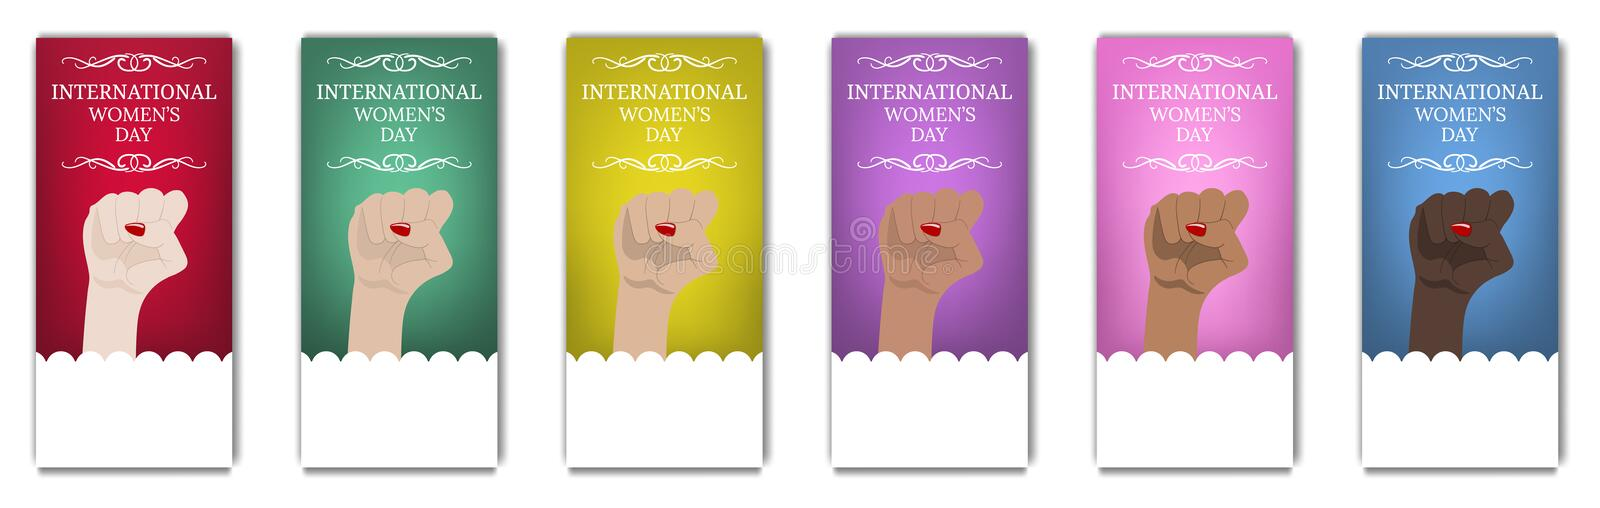 International Women`s Day Flyer, Brochure. Women`s March. Multinational Equality. Female hand with her fist raised up. Girl Power. vector illustration